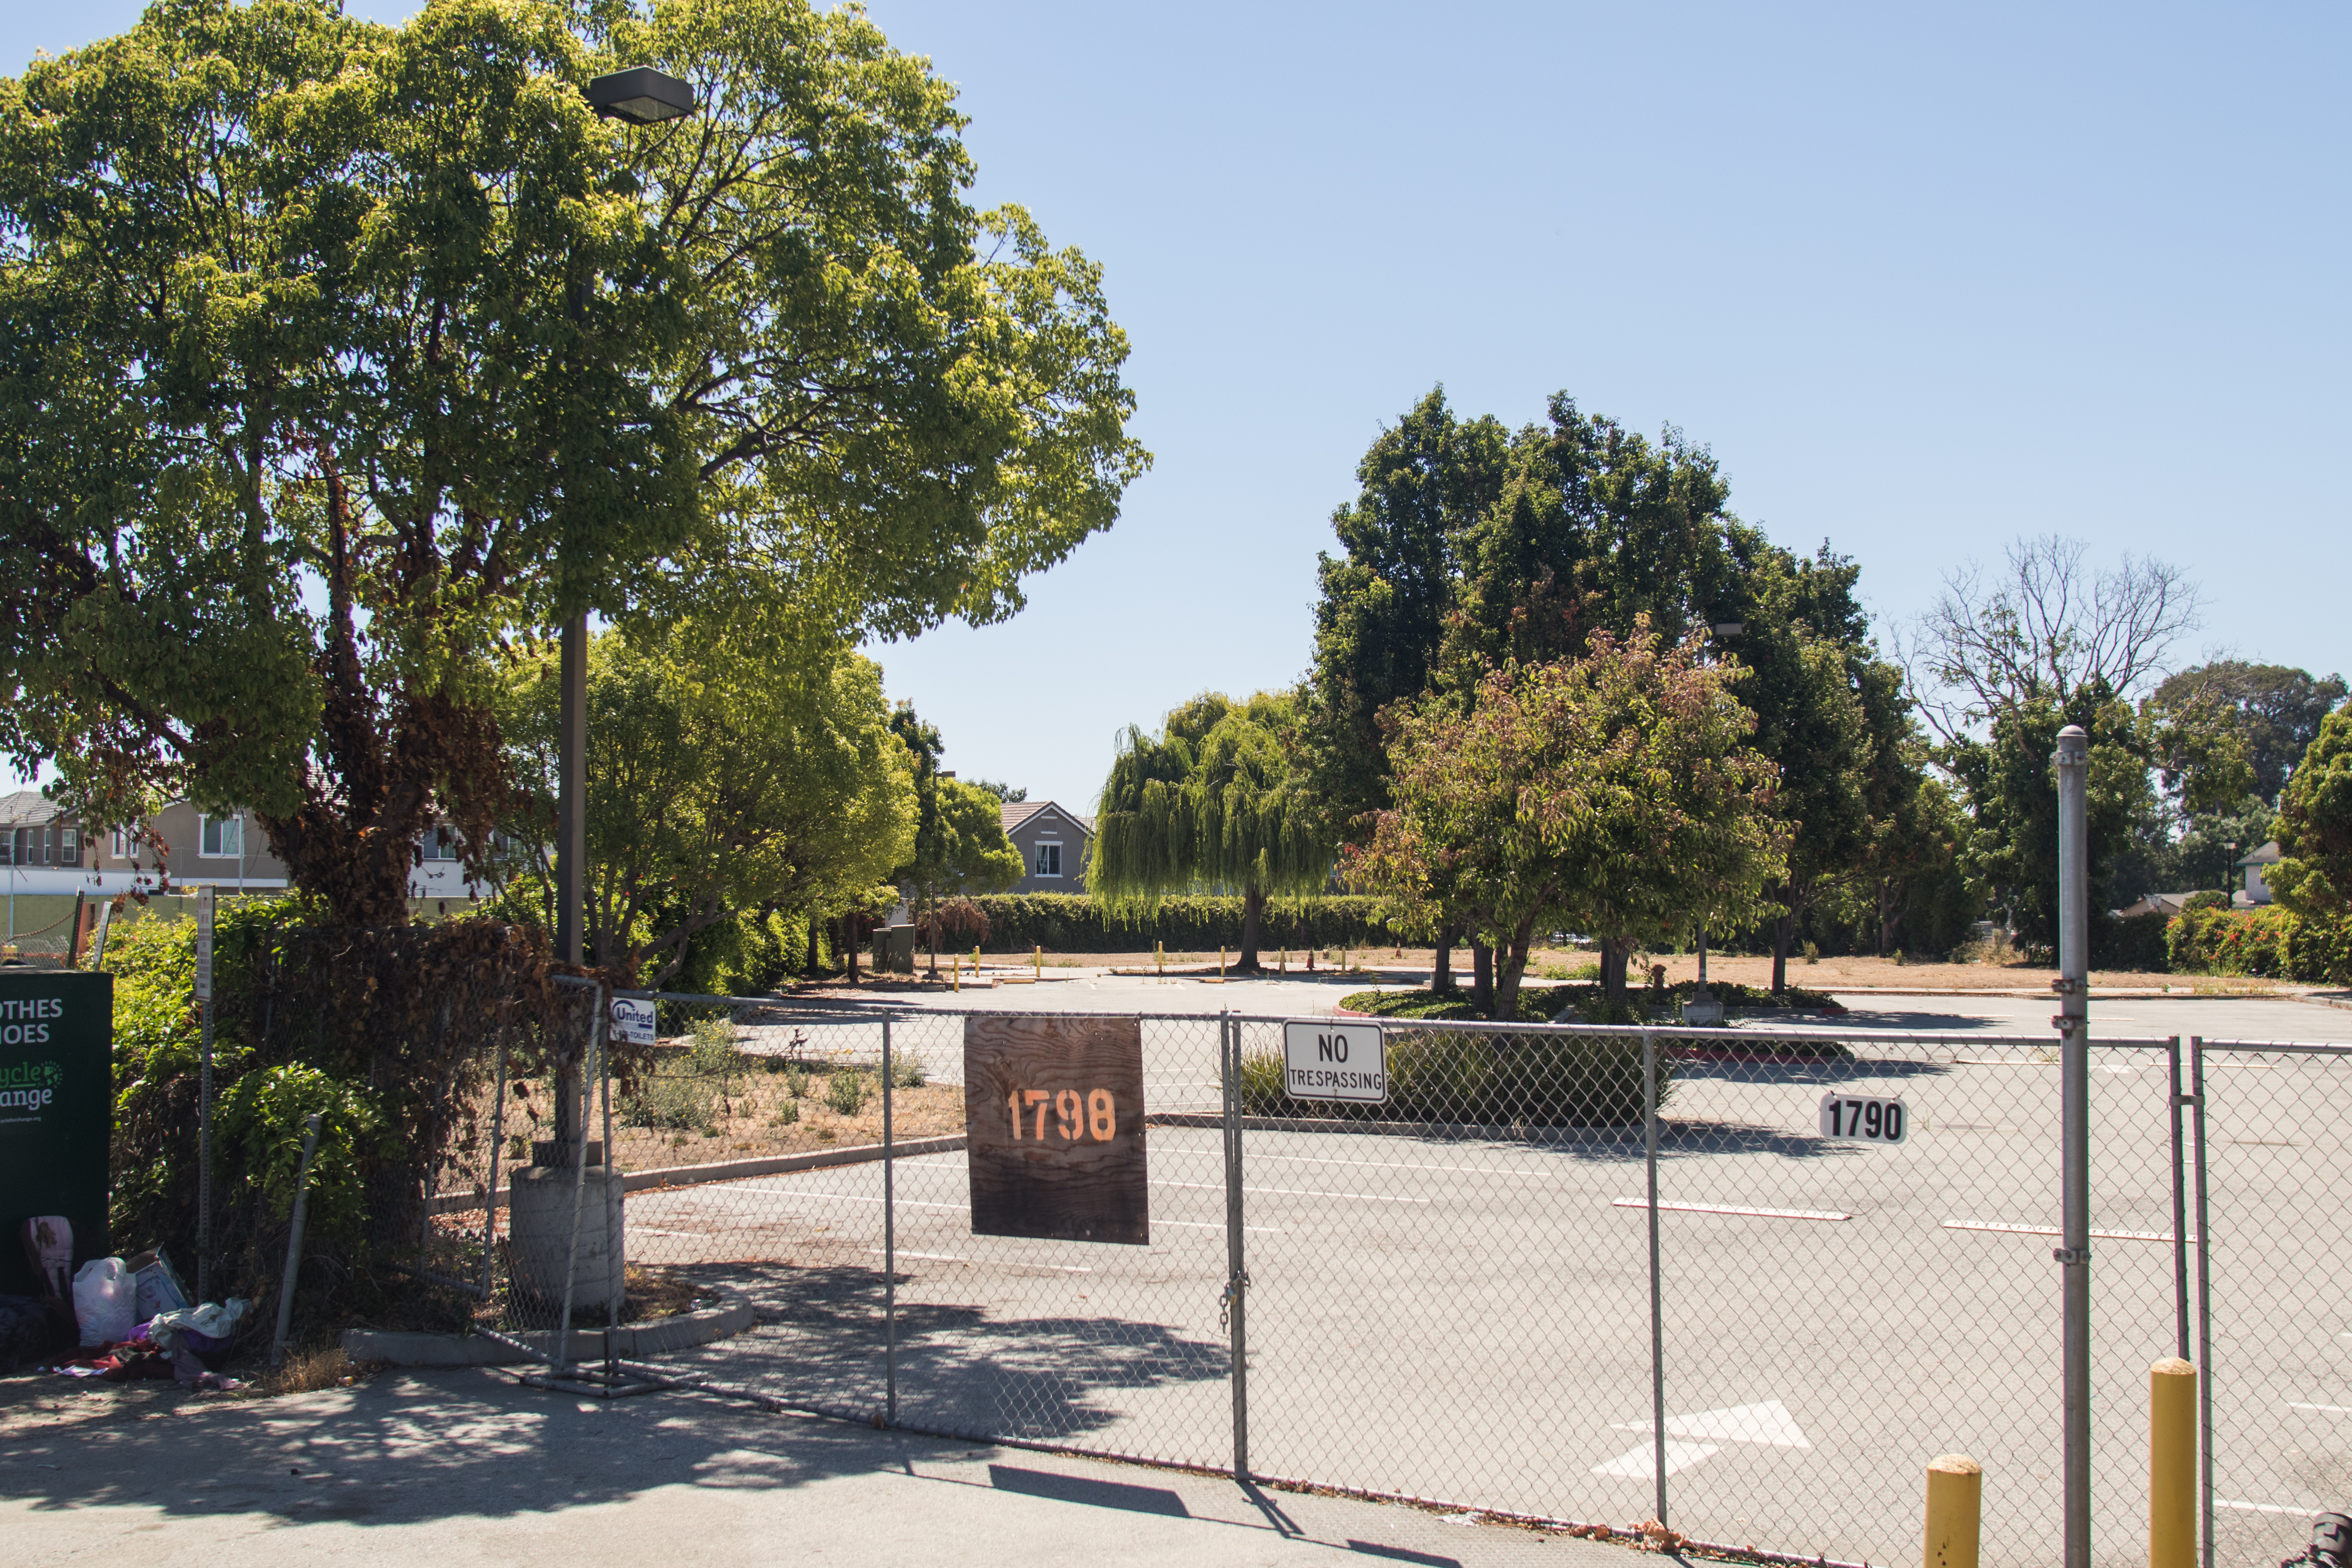 The parking lot at 1798 Bay Road in East Palo Alto is set to become a temporary overnight RV parking lot in a program that will include case management and other services. Photo by Veronica Weber.